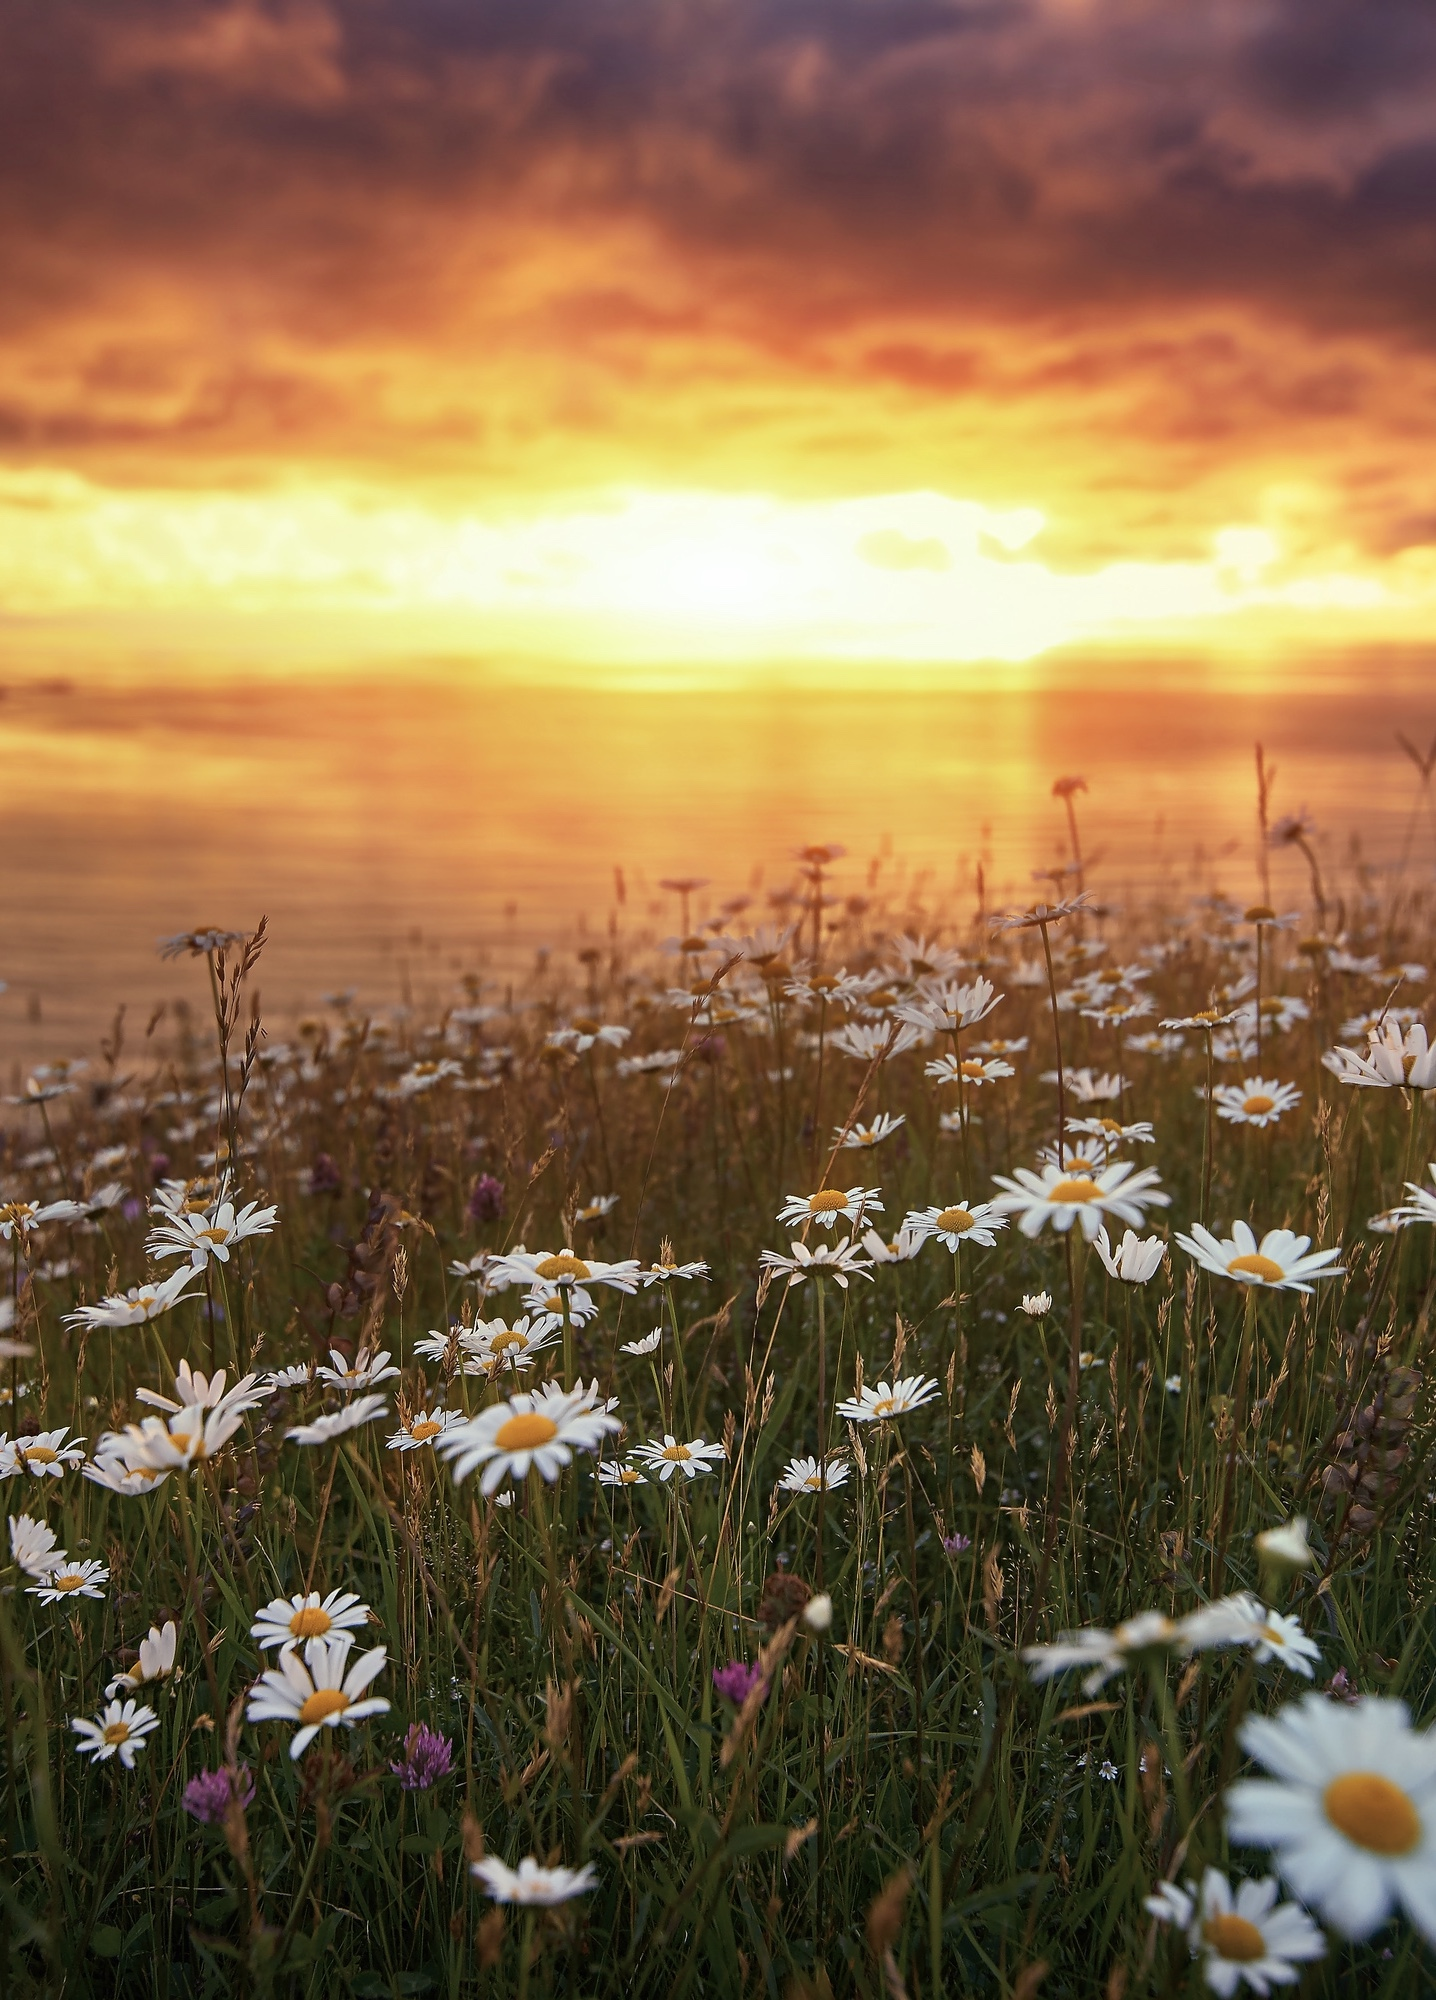 A field of white flowers with yellow centers along the shore of a body of water in West Newfoundland. You can also see a few smaller purple flowers. The sun is setting on the water and the sky is yellow,   orange, and red.